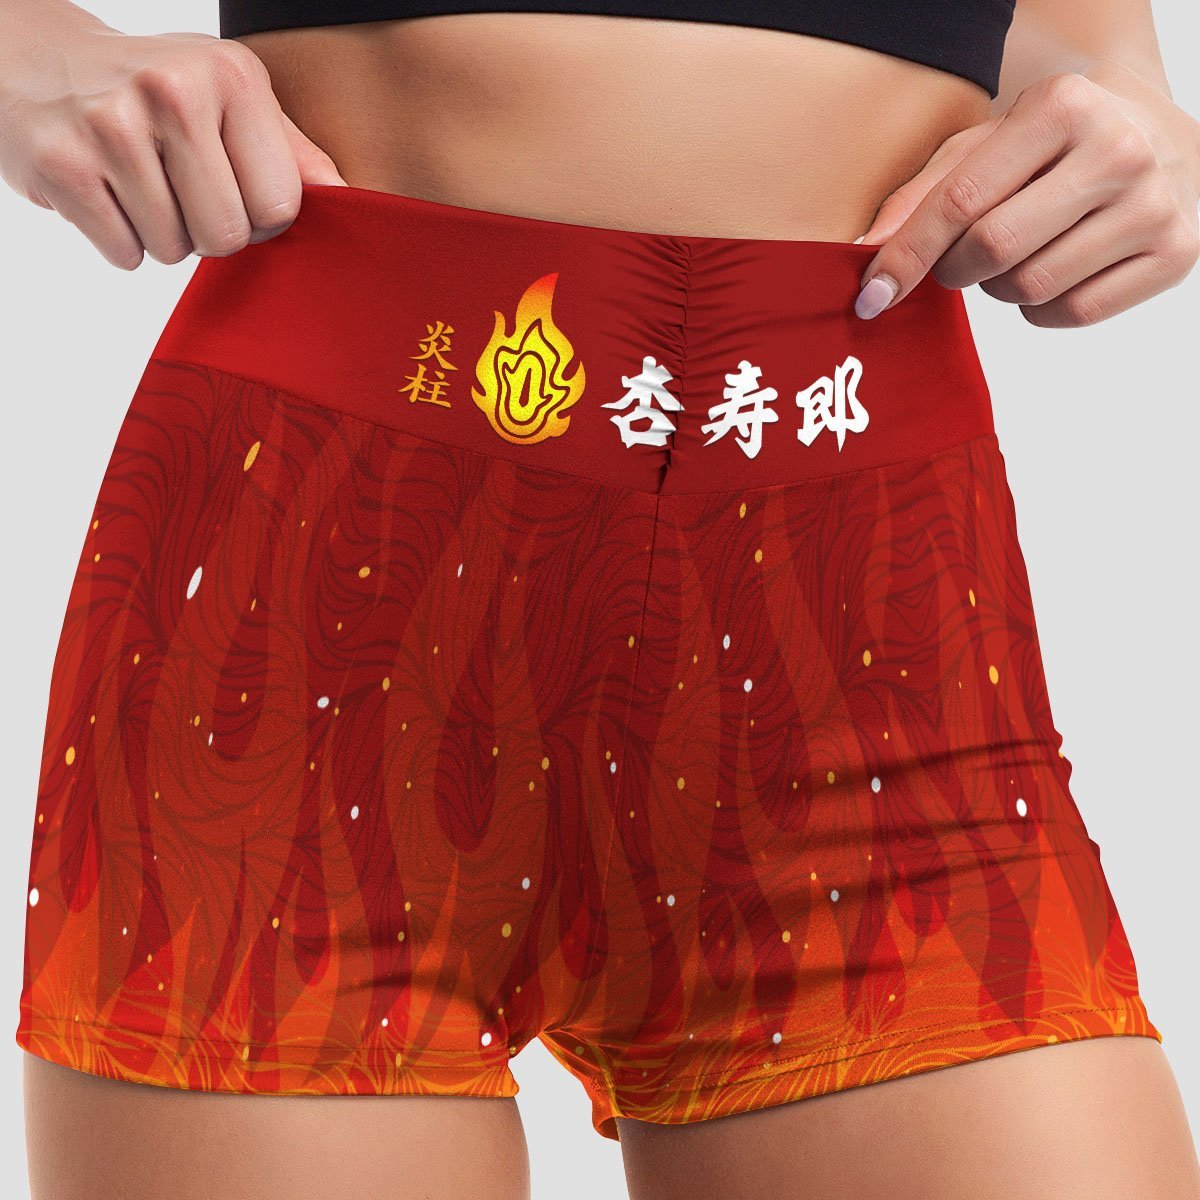 kyojuro fire active wear set 954670 - Anime Swimsuits